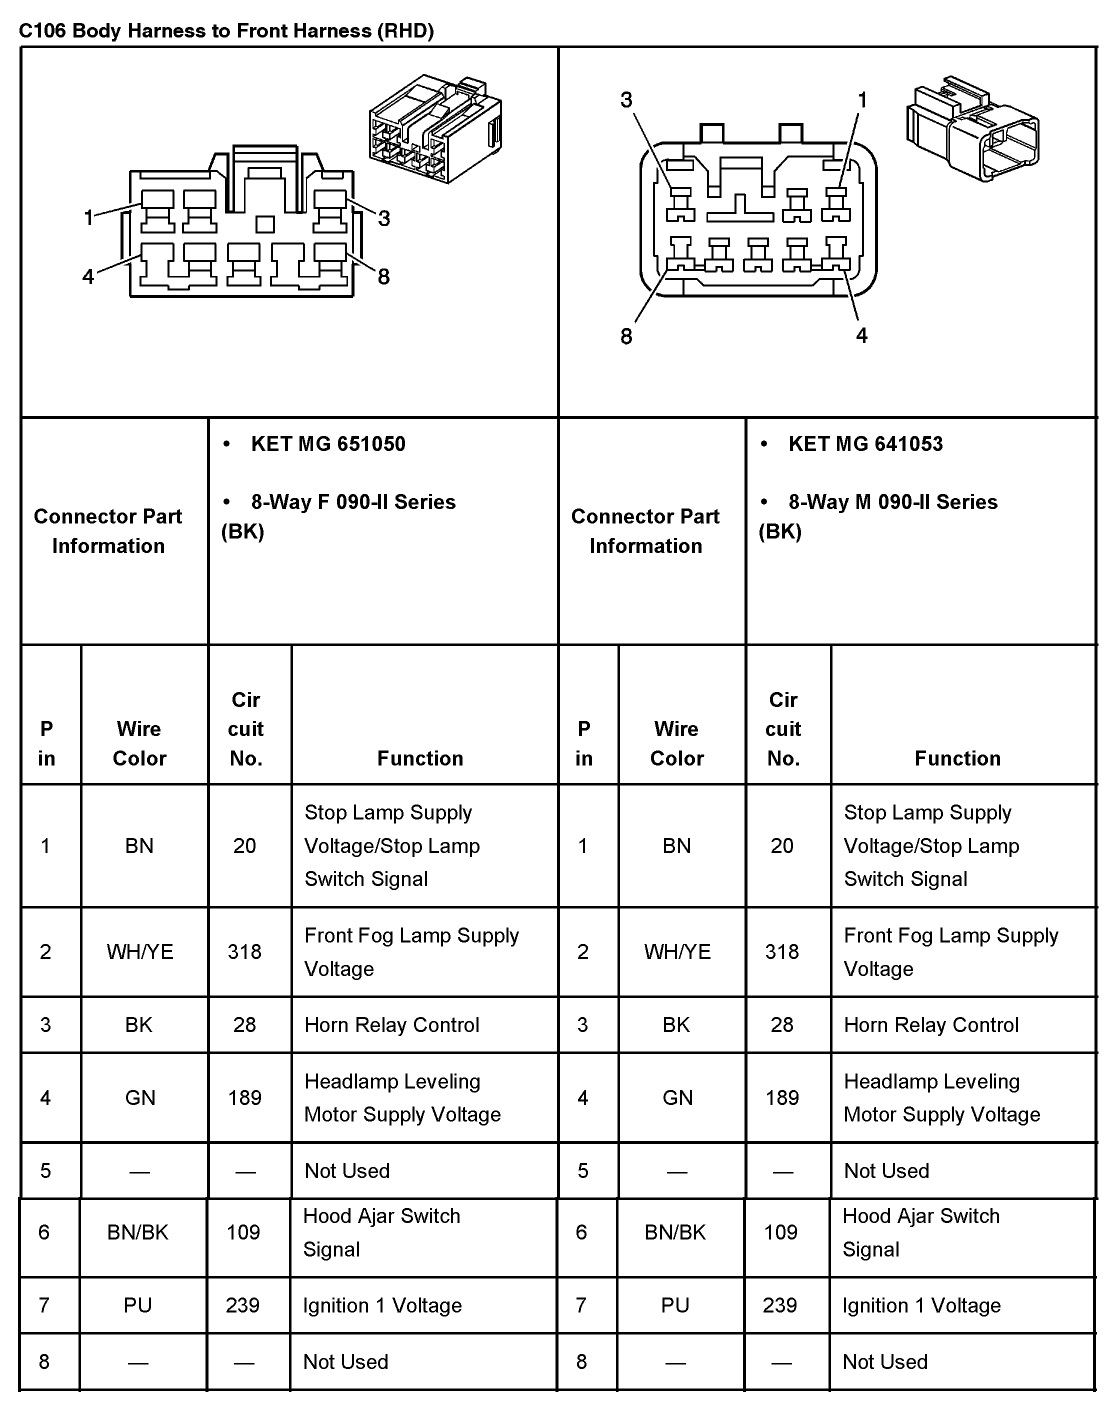 2005 Chevy Impala Fuse Box Location Wiring Library Multiple Electrical Outlets Free Download Diagrams Interior 2004 2011 Chevrolet Aveo Master Connector List And